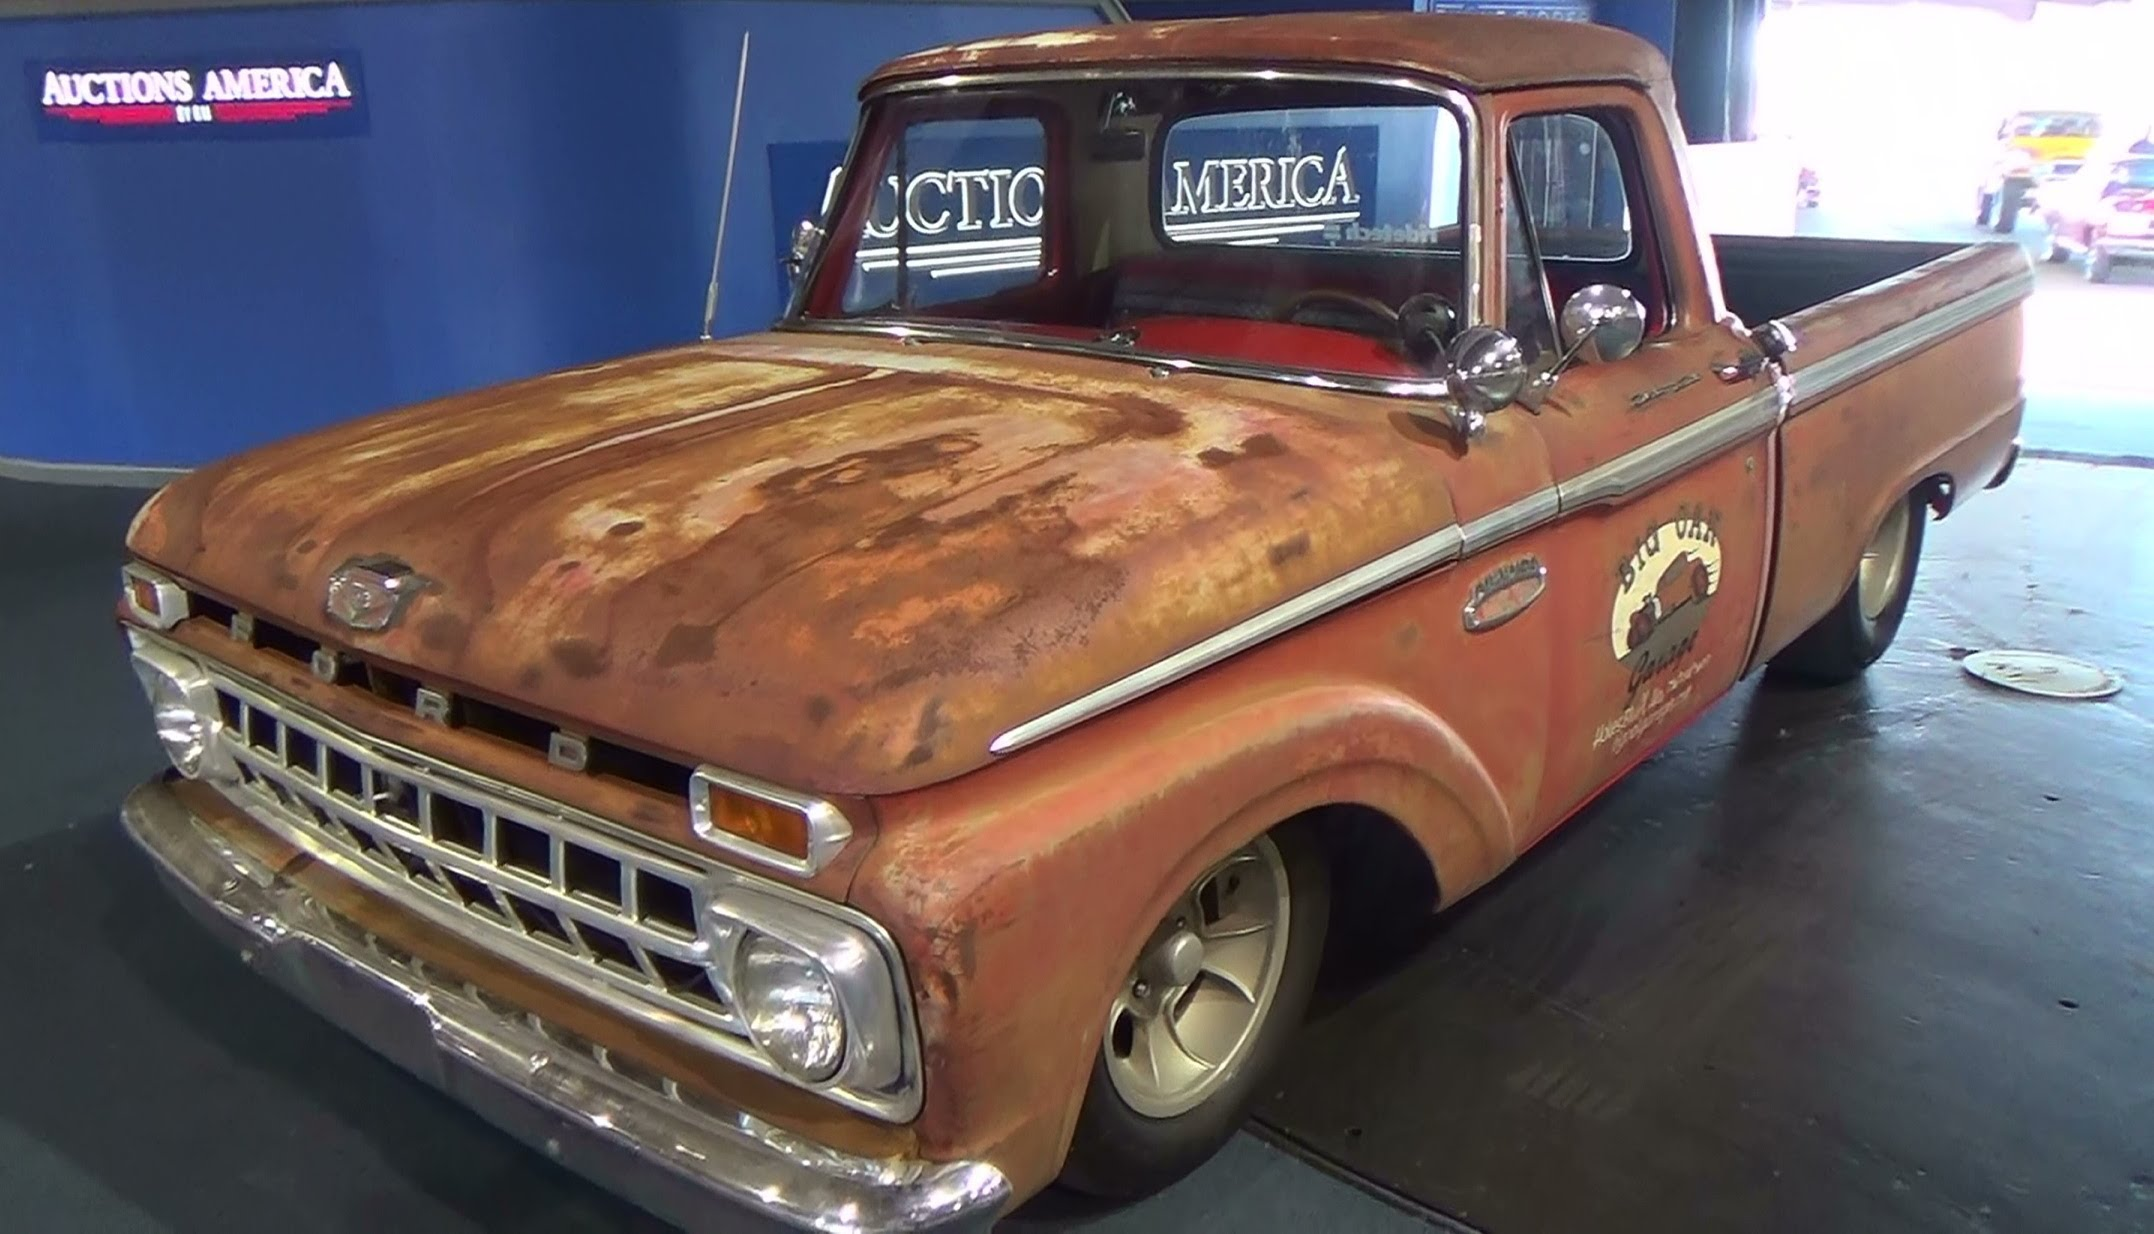 1965 ford f100 shop truck scottiedtv traveling charity road show 2014 scottiedtv coolest cars on the web